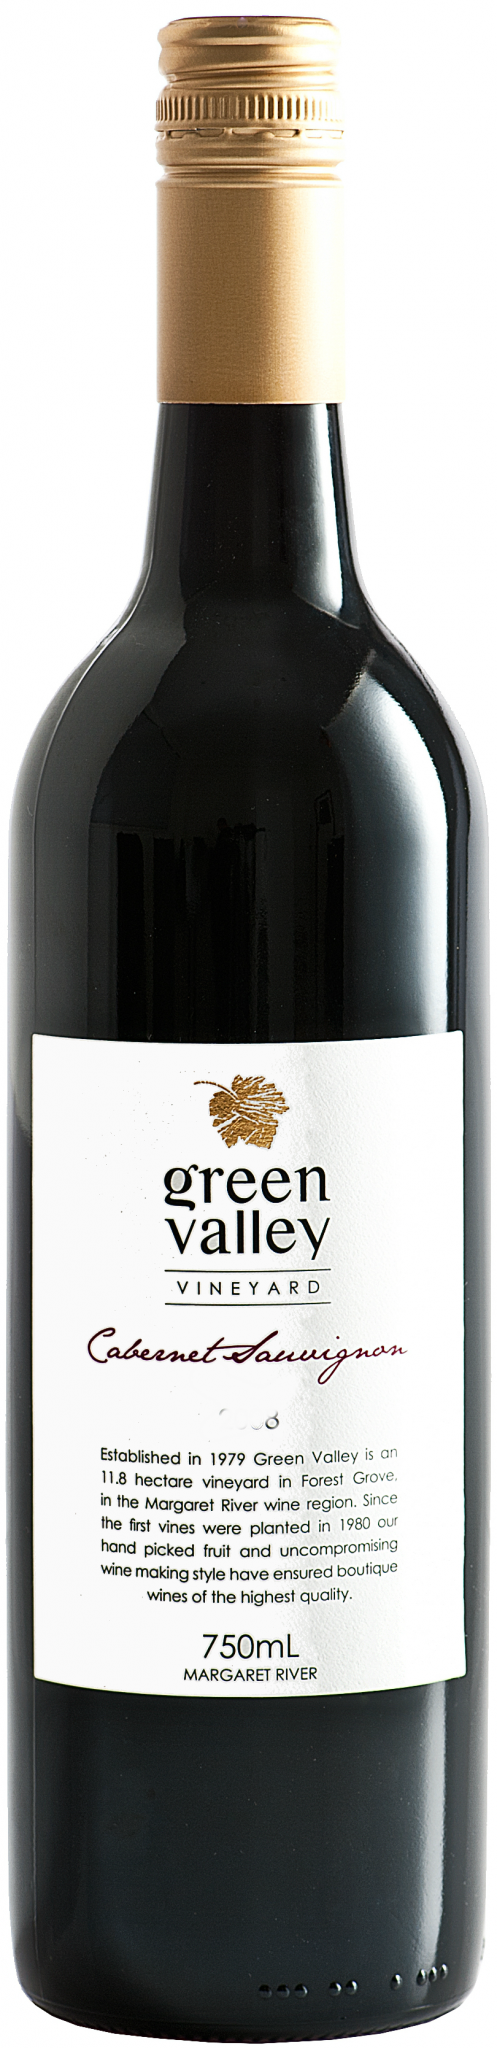 Green Valley Cabernet Sauvignon 2012-0